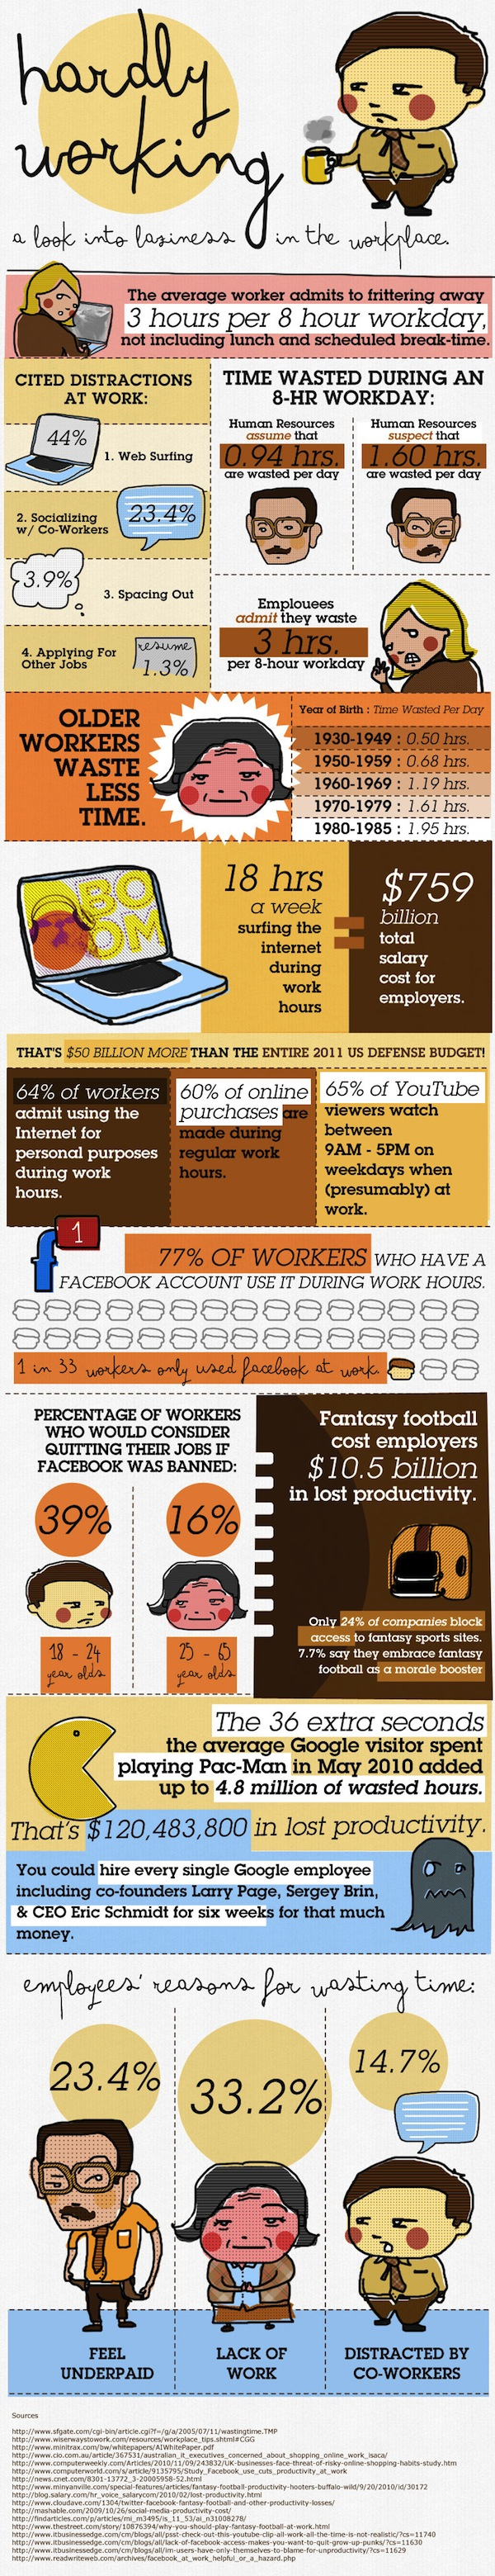 infographic workplace